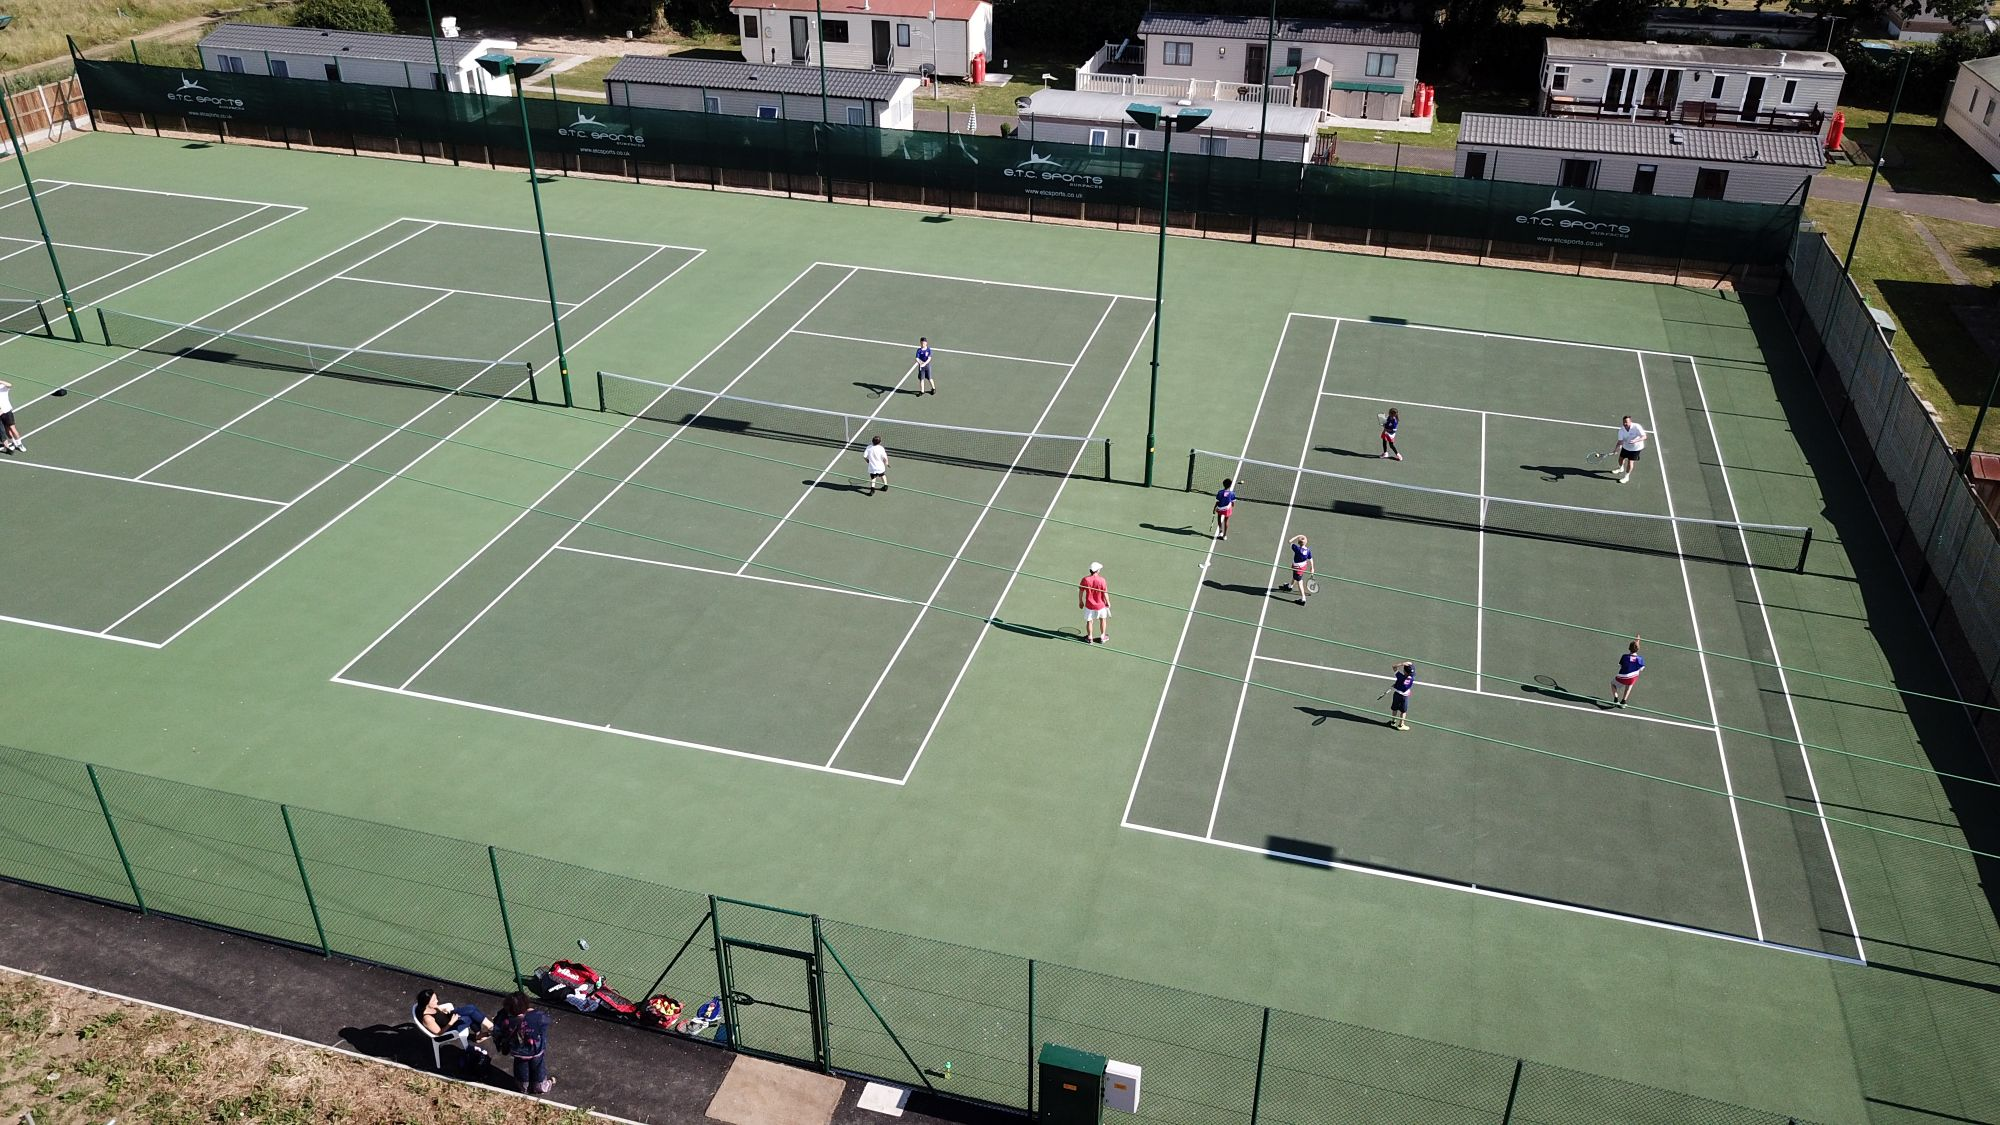 Hardwearing asphalt tennis courts are an ideal solution for all-year-round play